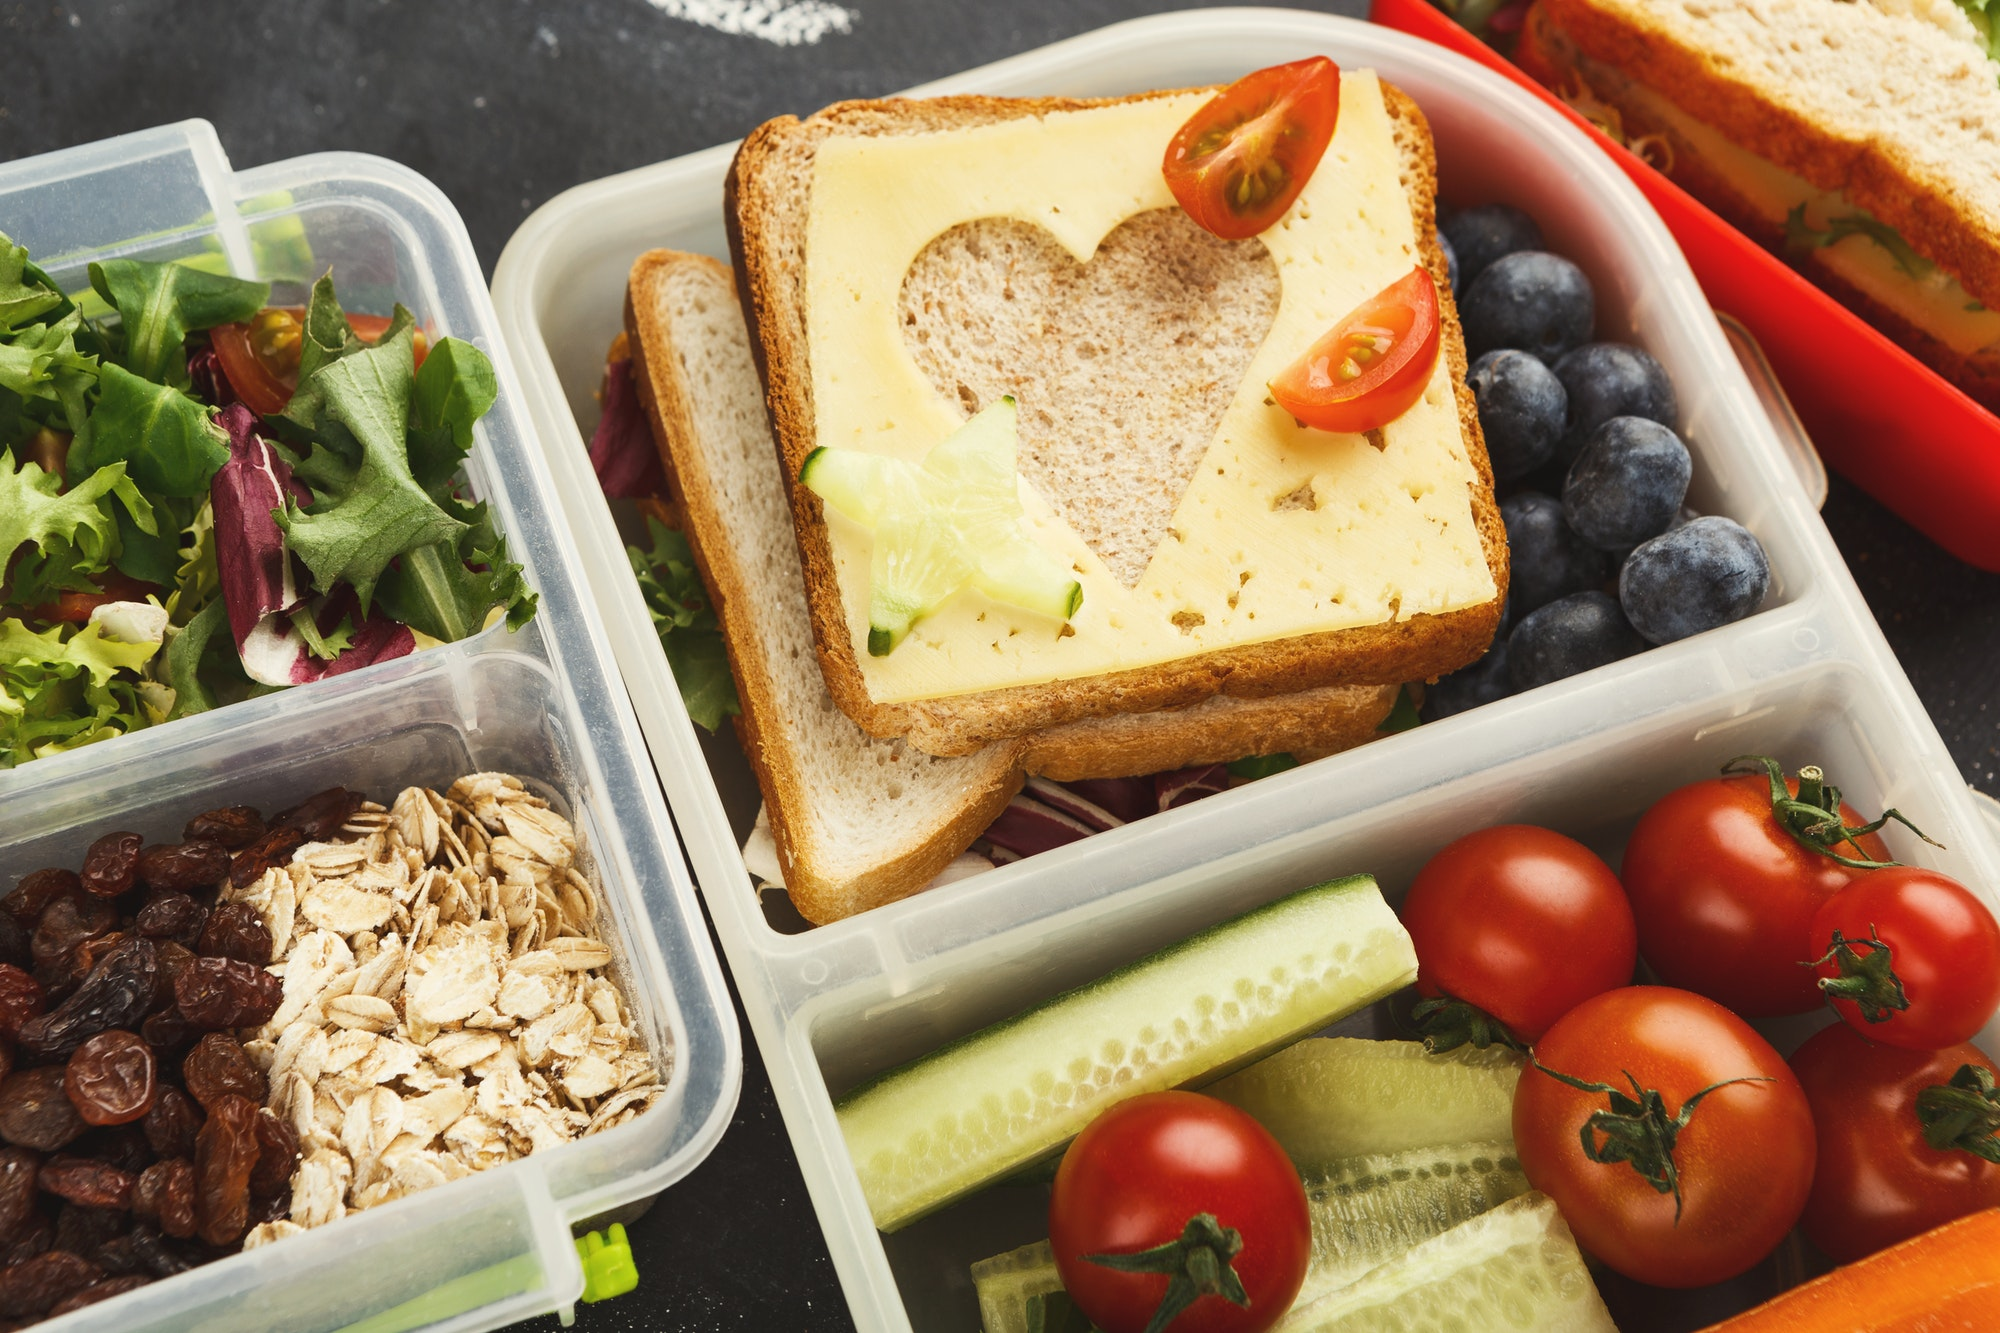 Lunch boxes for kid. Healthy snack for school dinner